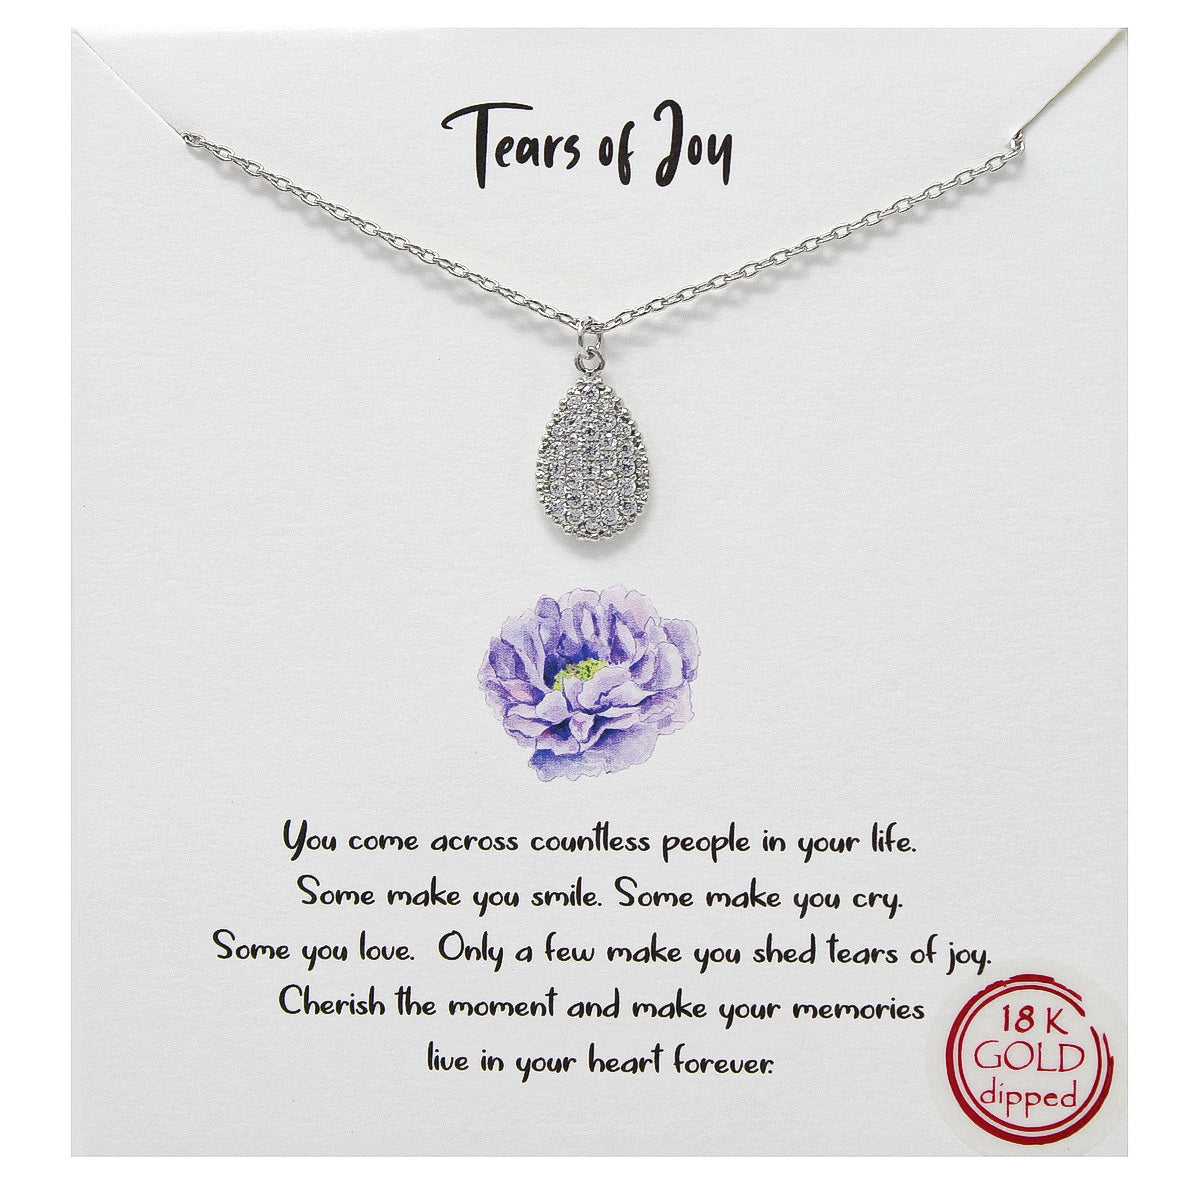 Tell Your Story: Tears Of Joy CZ Pave Pendant Simple Chain Necklace